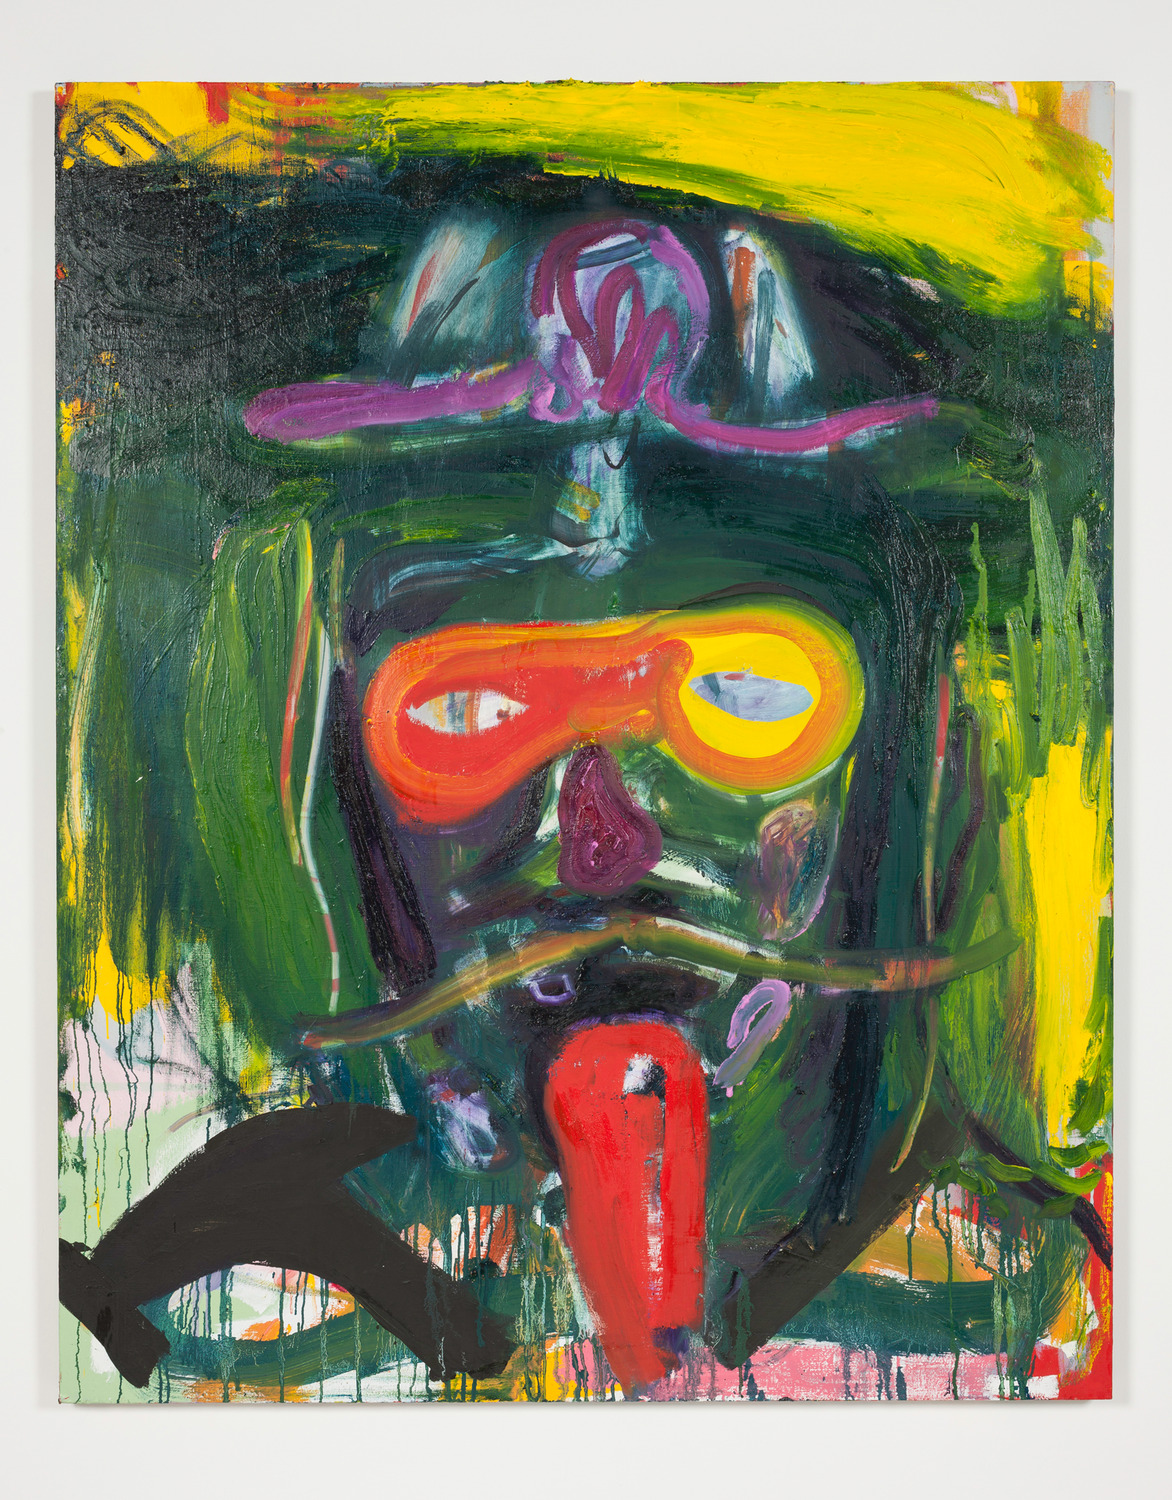 Self P. Carnival, 2014, Oil on linen, 152.4 x 121.9 x 3.5 cm